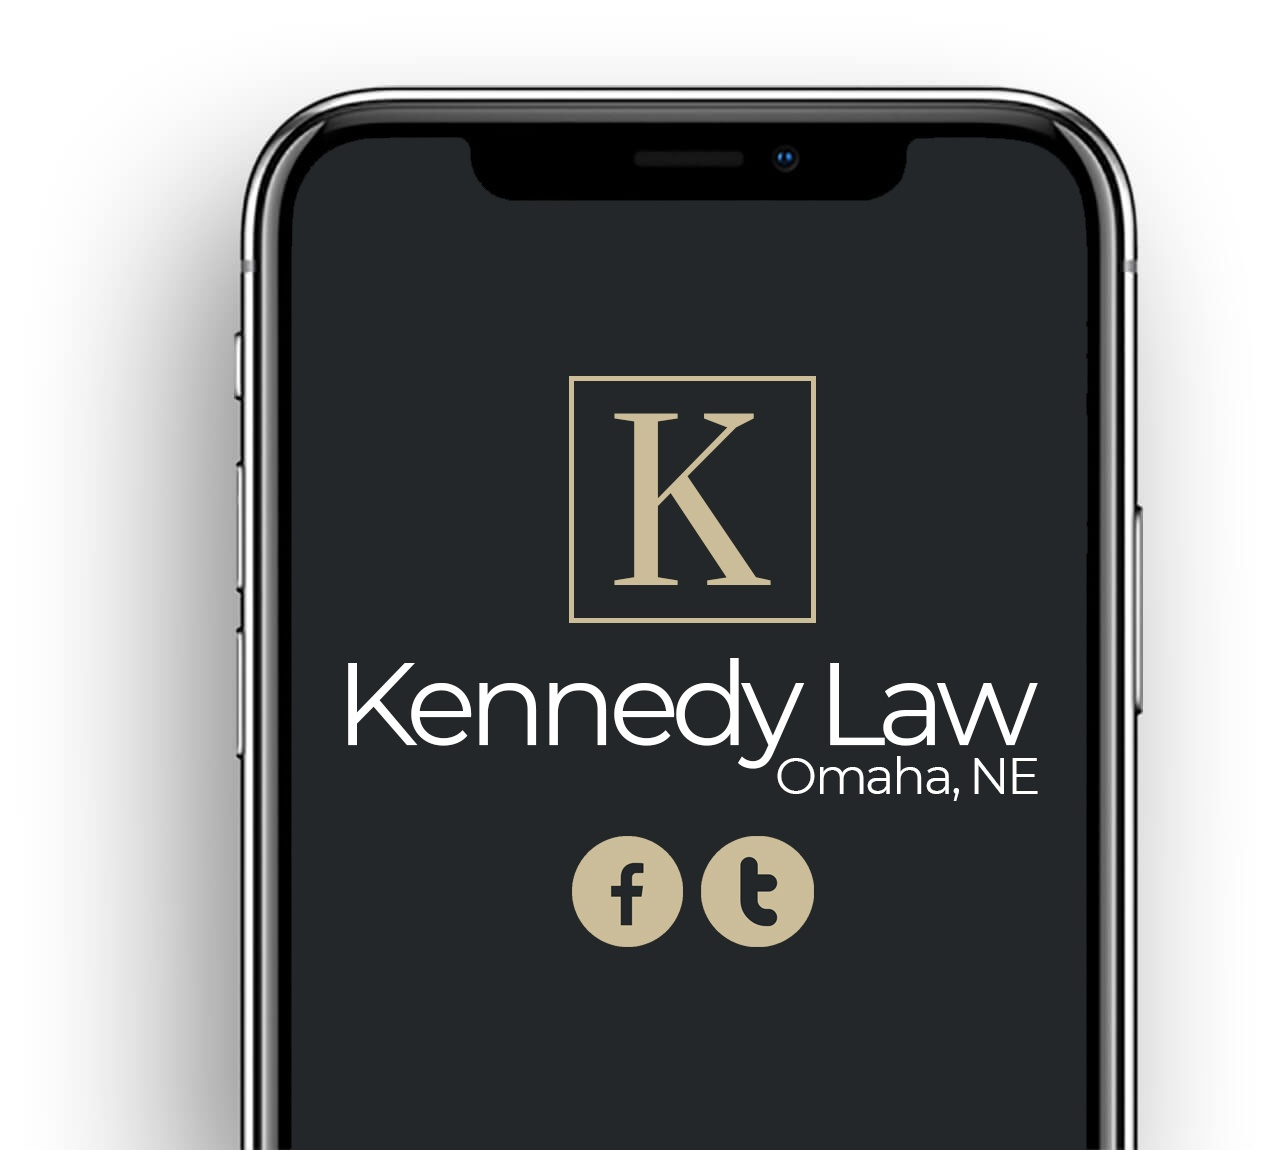 Kennedy Law Firm Omaha, NE - Facebook and Twitter